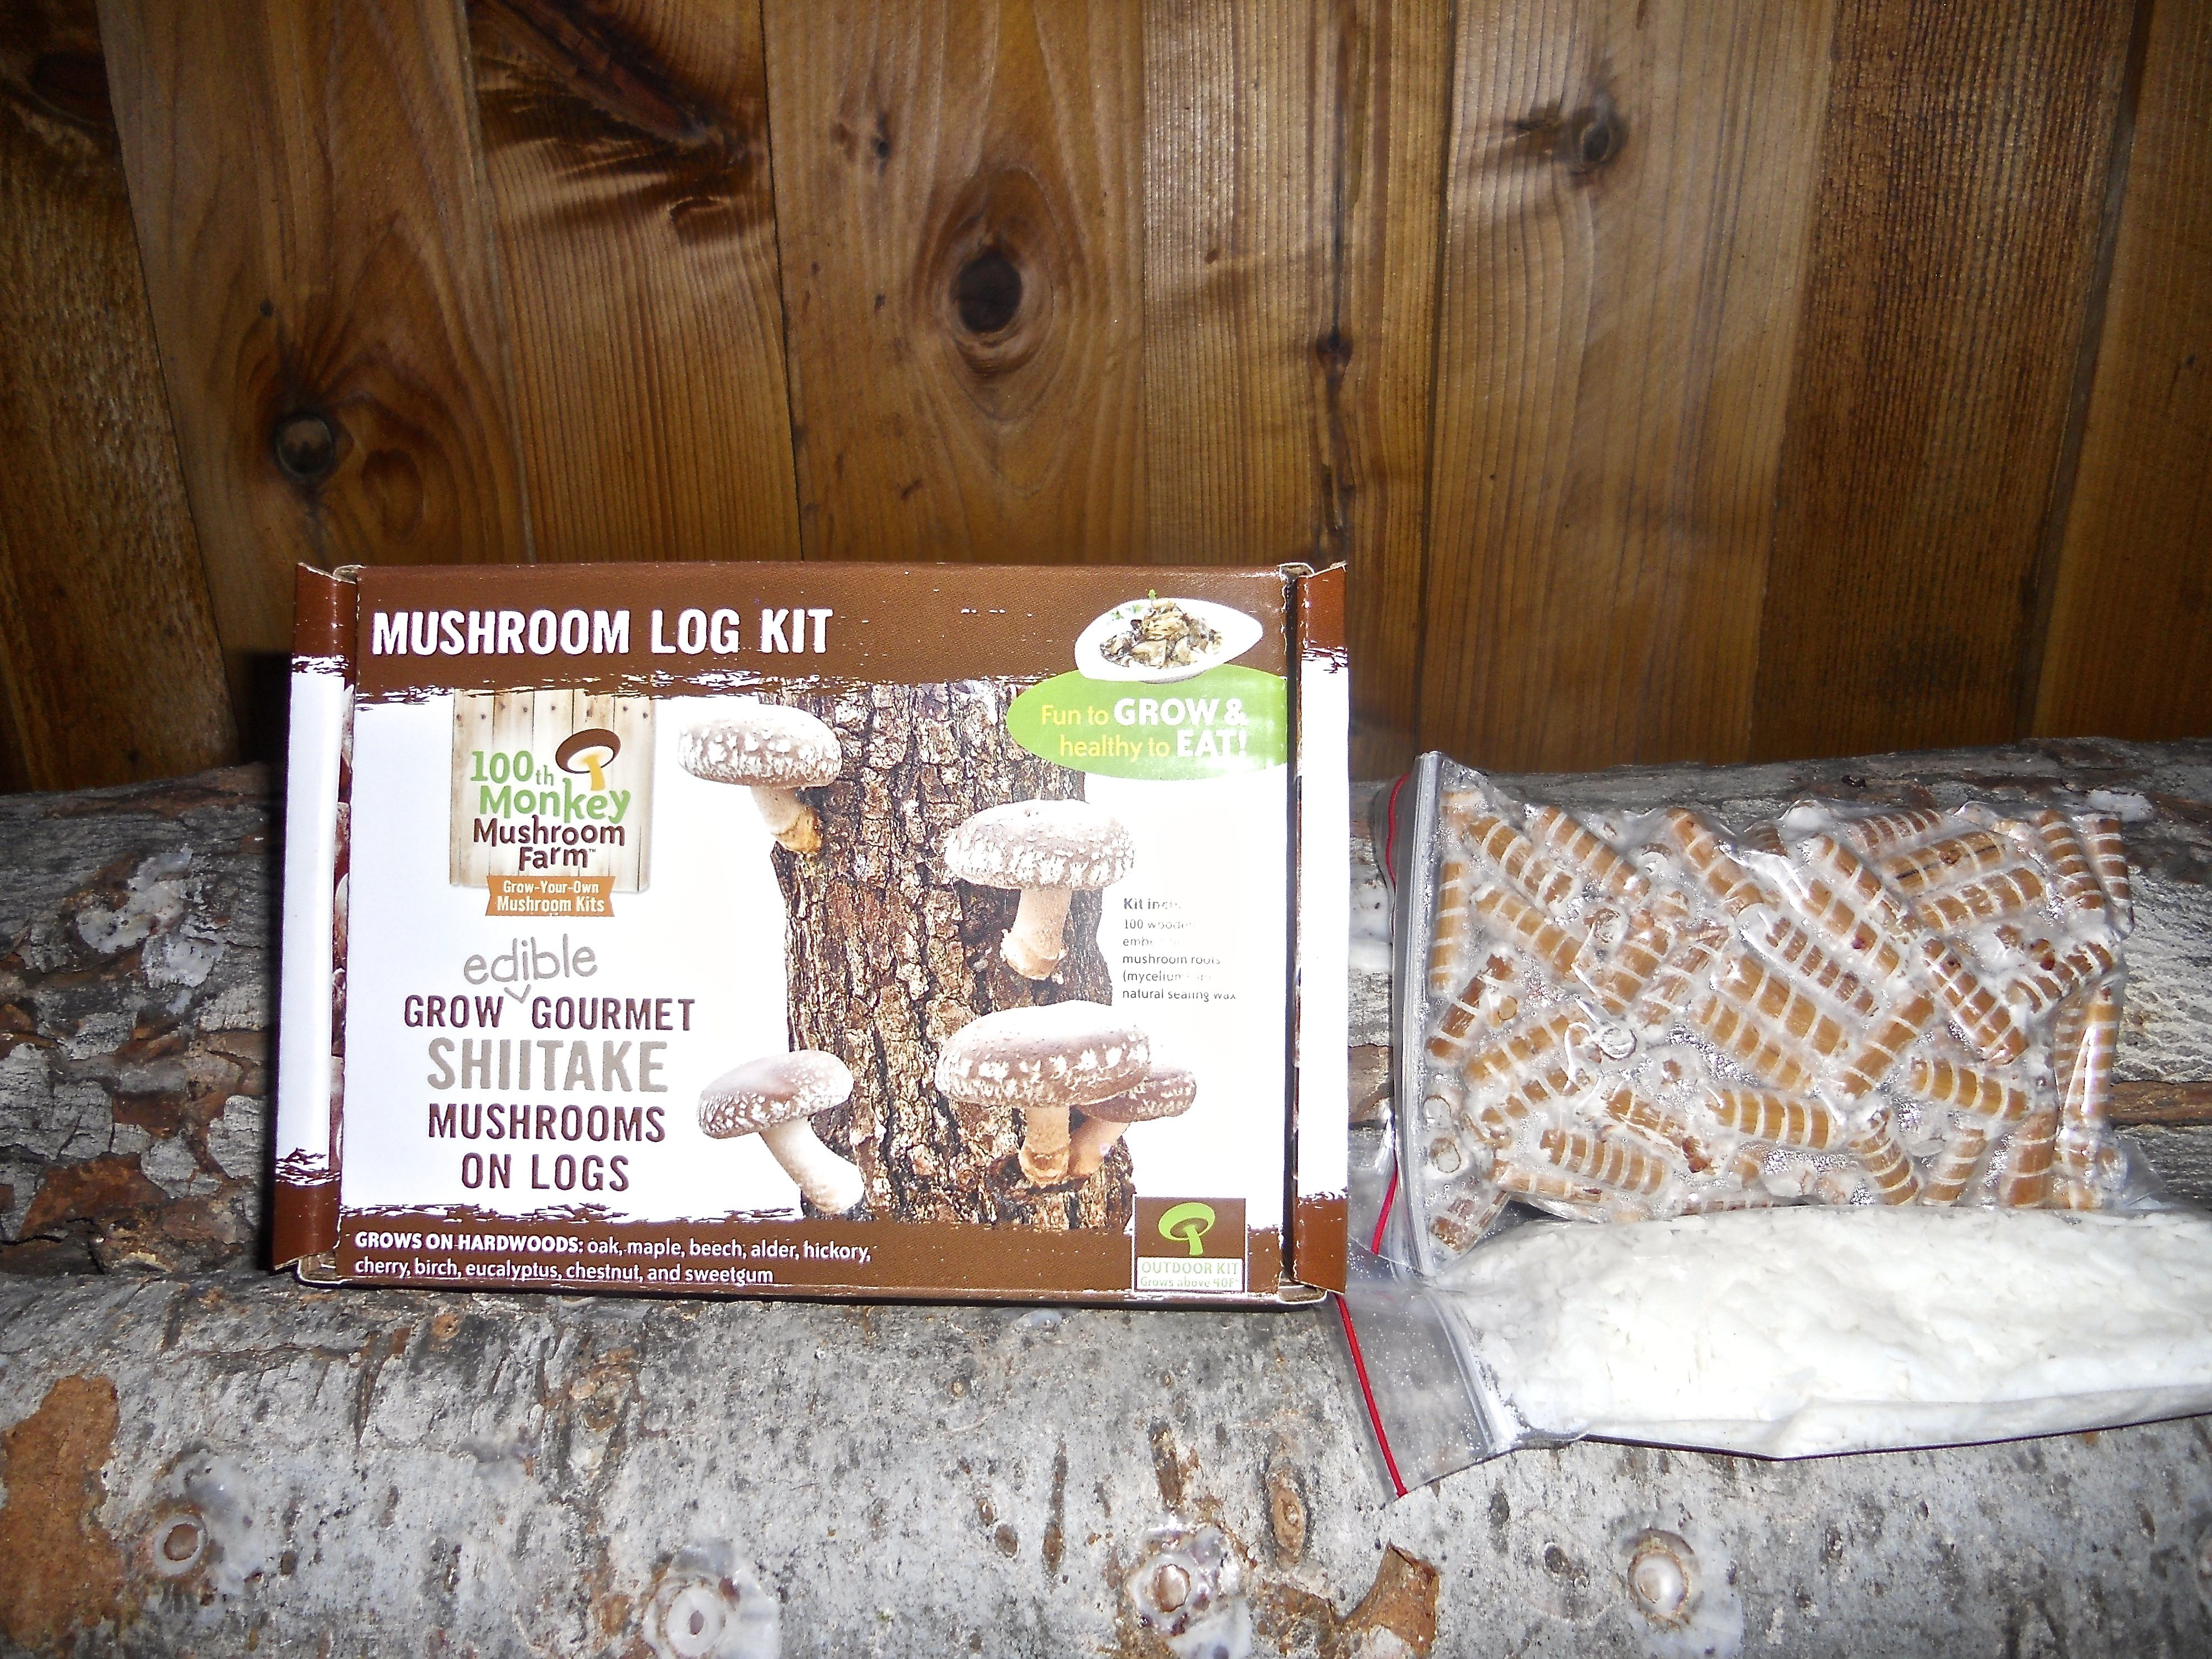 100th Monkey Mushrooms Farms Shiitake mushroom log kit with everything needed to grow delicious mushrooms on a log. Kit includes pack of dowels and natural soy wax for sealing.